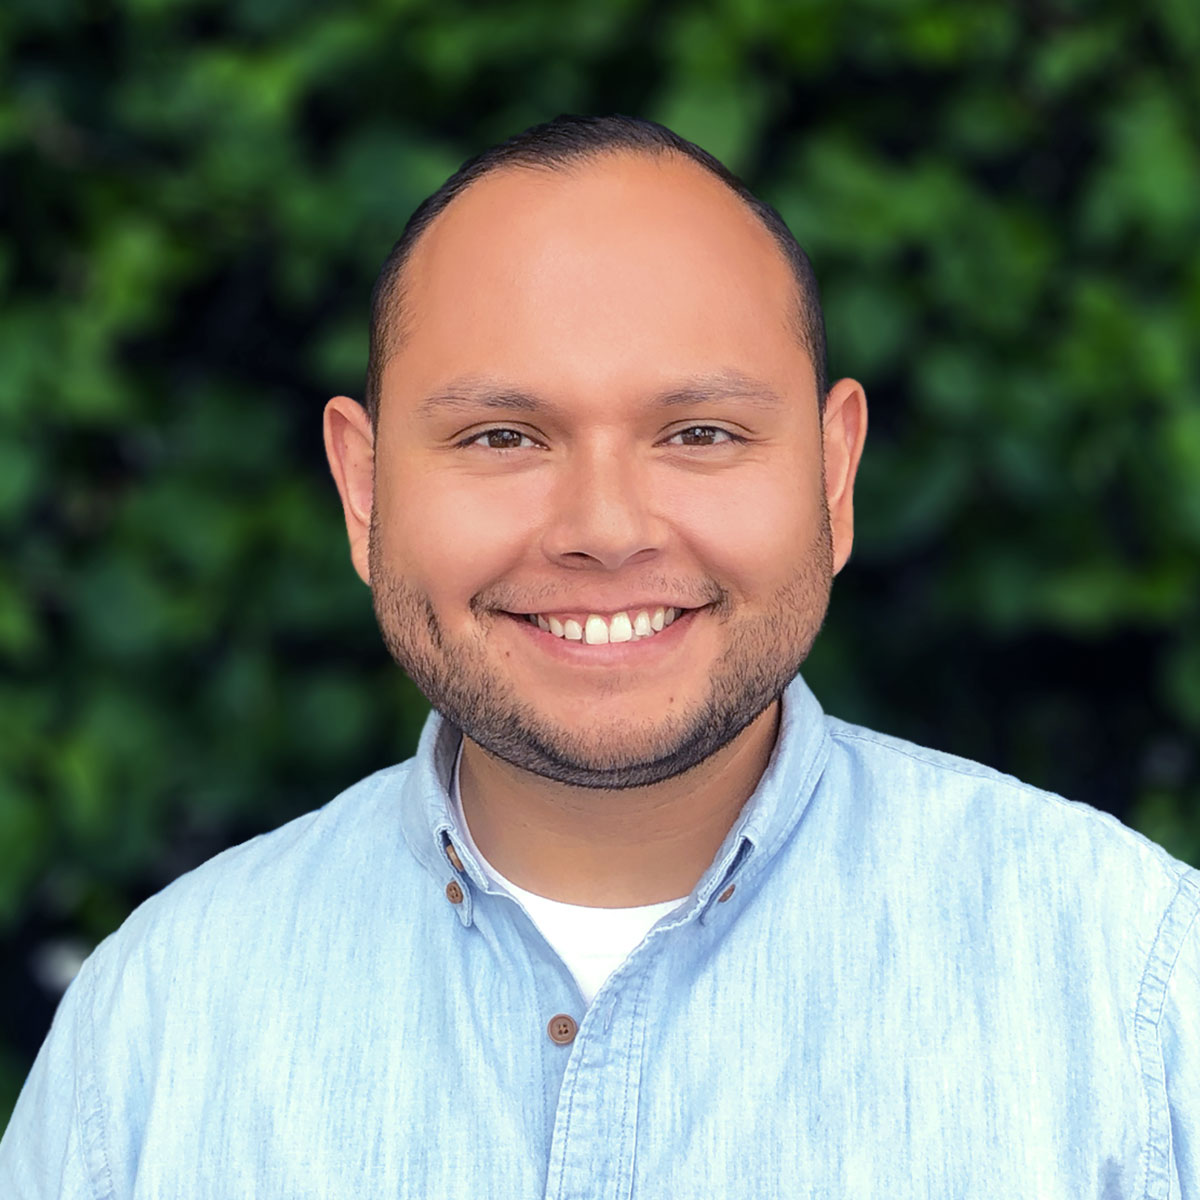 Eric Romero is a design associate at Los Angeles architecture firm Tim Barber Ltd.